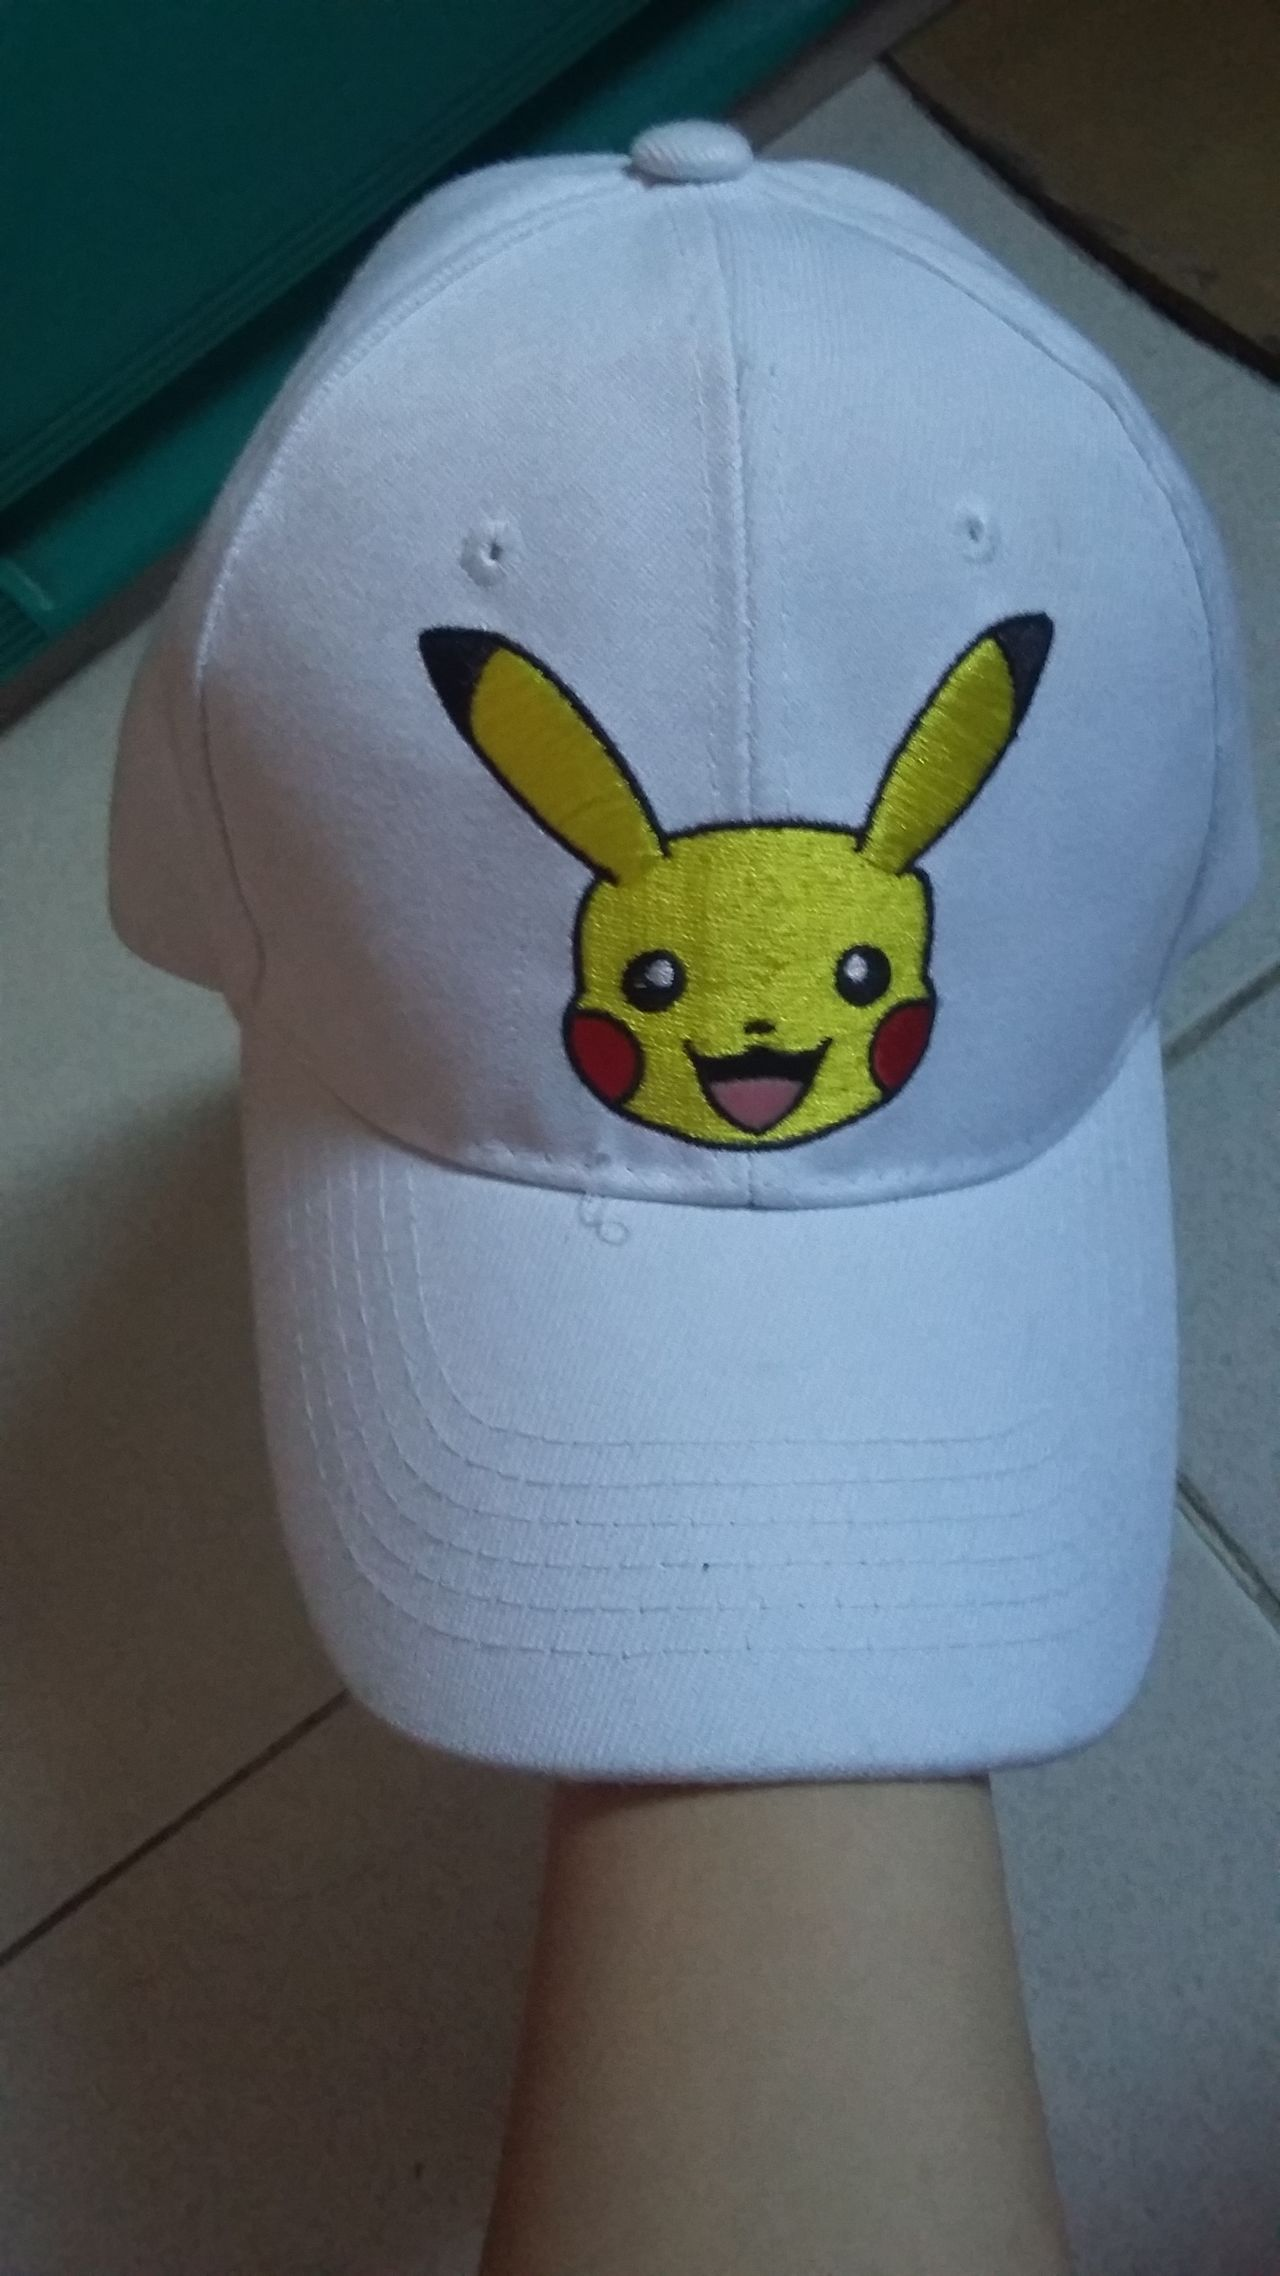 Pikachu Smiley Face Pikachu Indoors  Hat Cap Sun Beautiful Anthropomorphic Smiley Face Anthropomorphic Face Close-up No People Day Photography Photooftheday Philippines